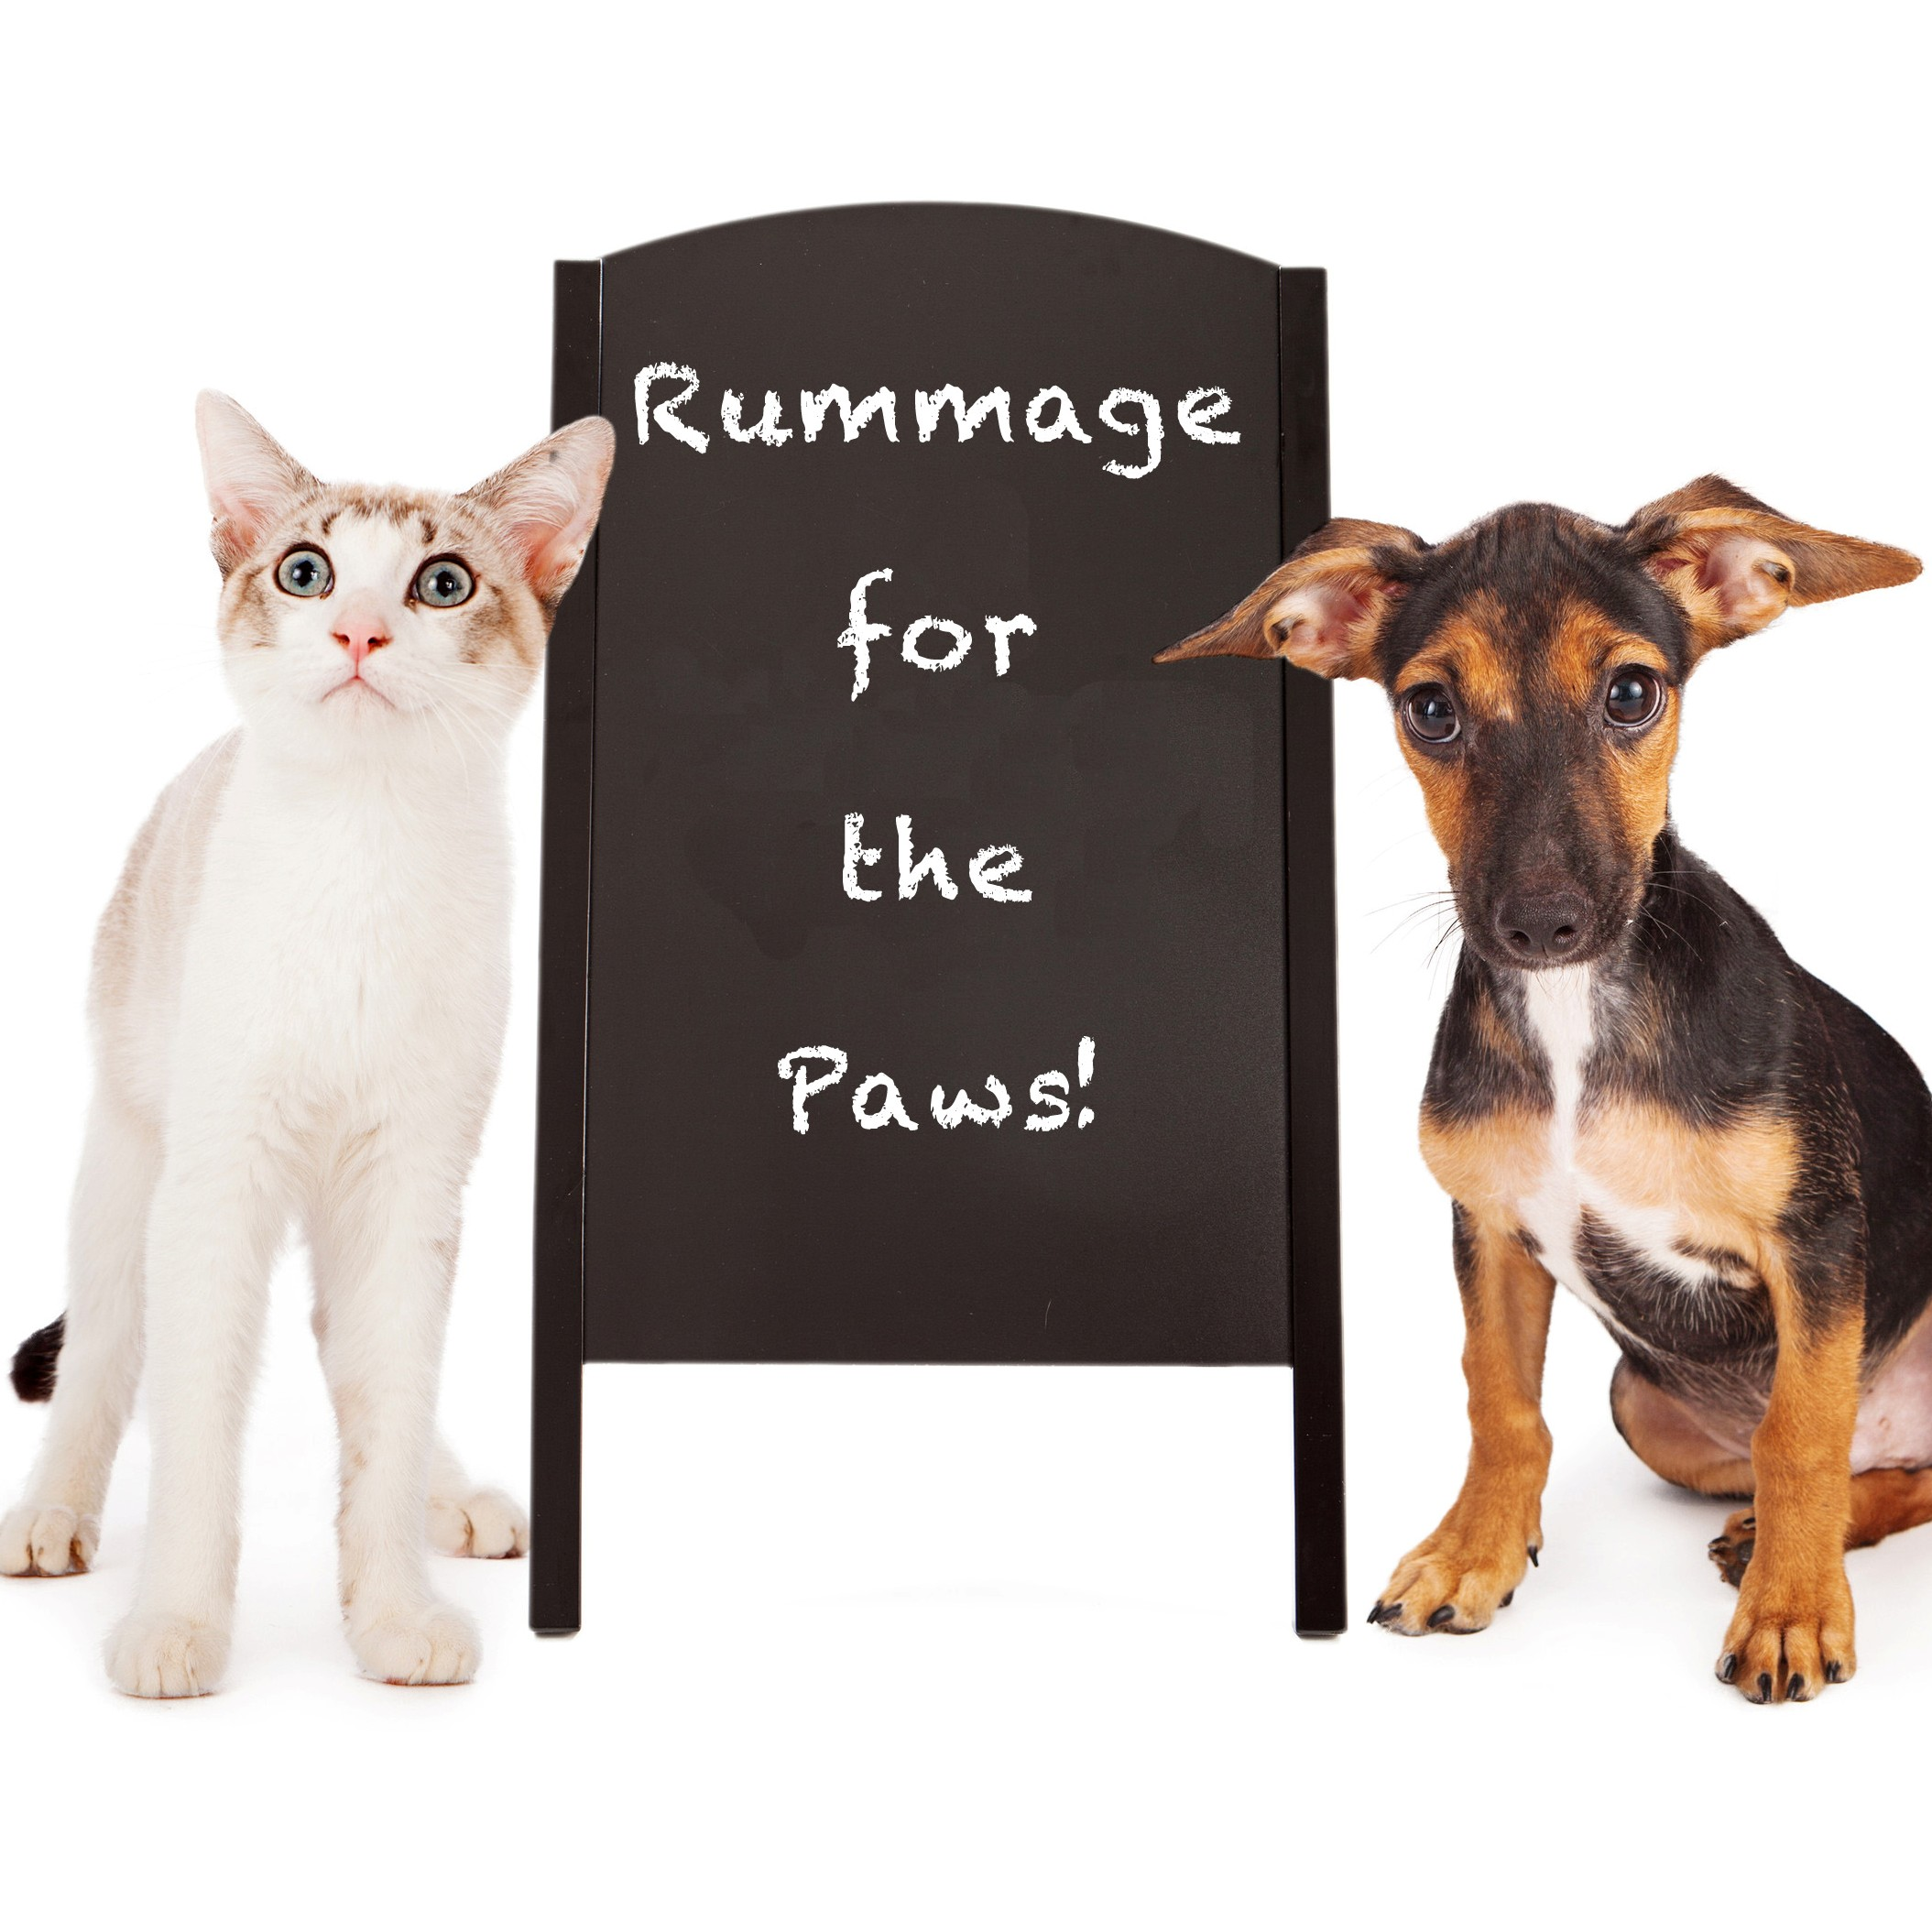 COLLECTION DAY RUMMAGE SALE - Upper Peninsula Animal Welfare